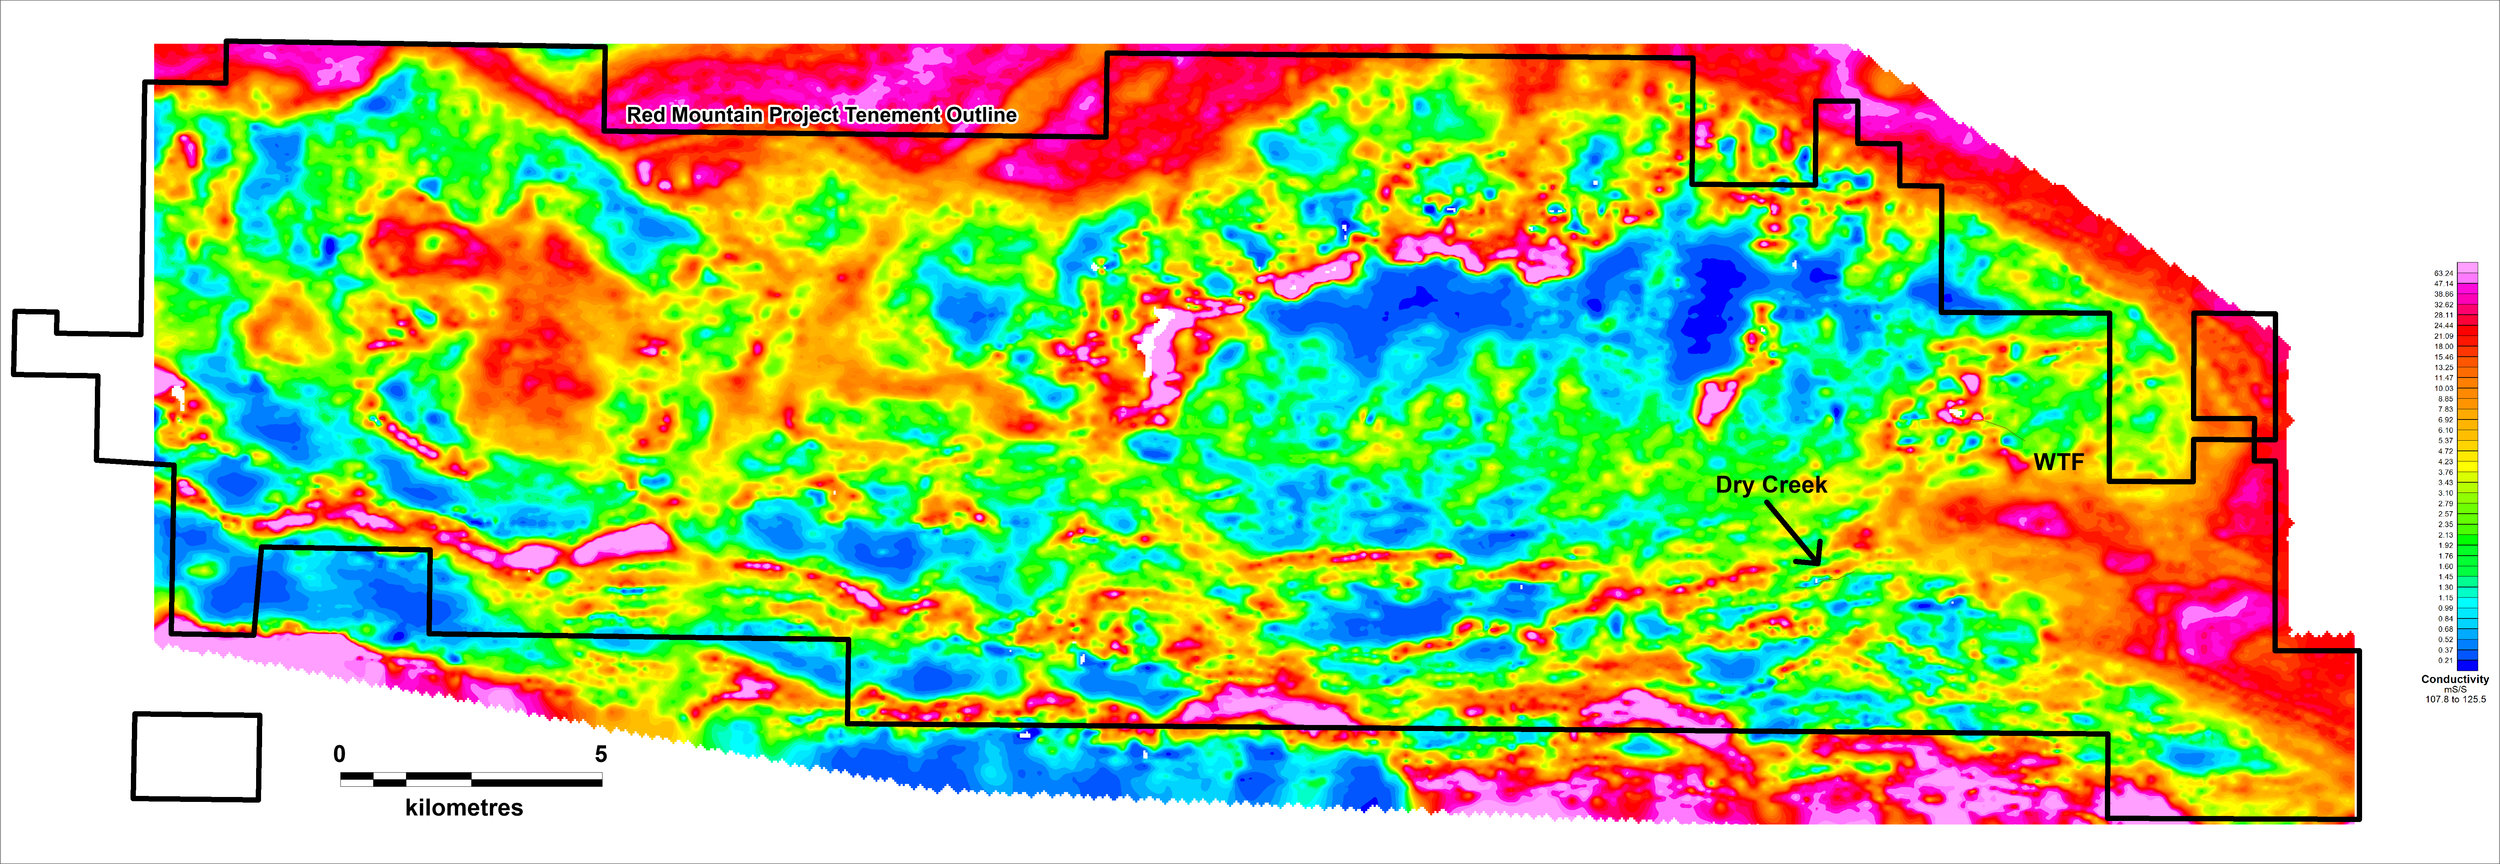 Figure 8:  Conductivity depth slice of the 1D inversion model of the SkyTEM electromagnetics data at 120m below surface. The survey highlights conductivity features associated with VMS mineralisation at the Dry Creek and West Tundra Flats (WTF) deposits.